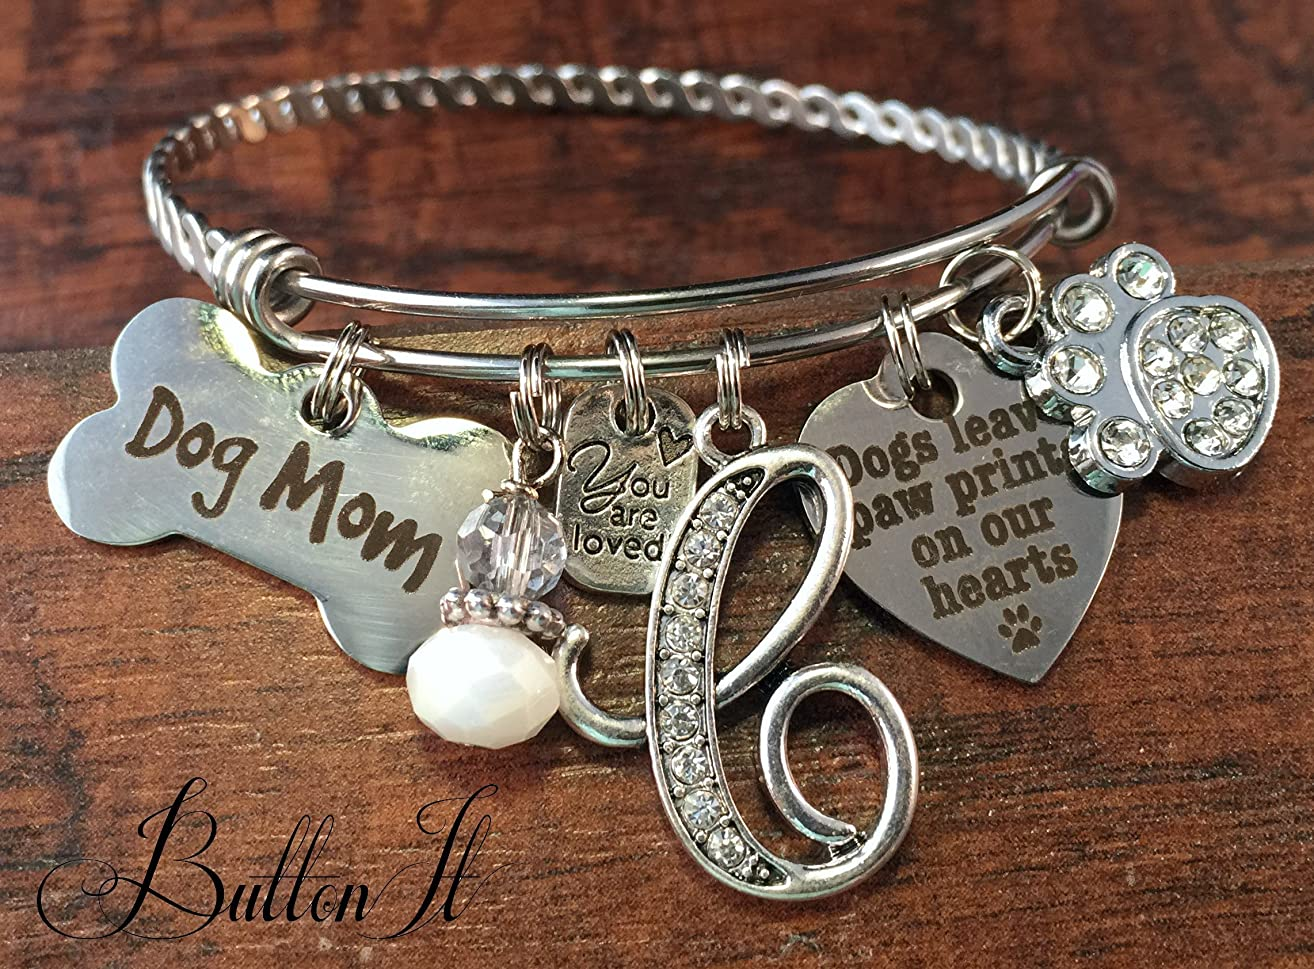 BANGLE bracelet, Pet loss gifts, Dog mom, Animal lover jewelry, Pet memorial, charm bracelet, Dogs leave paw prints on our hearts, INITIAL jewelry